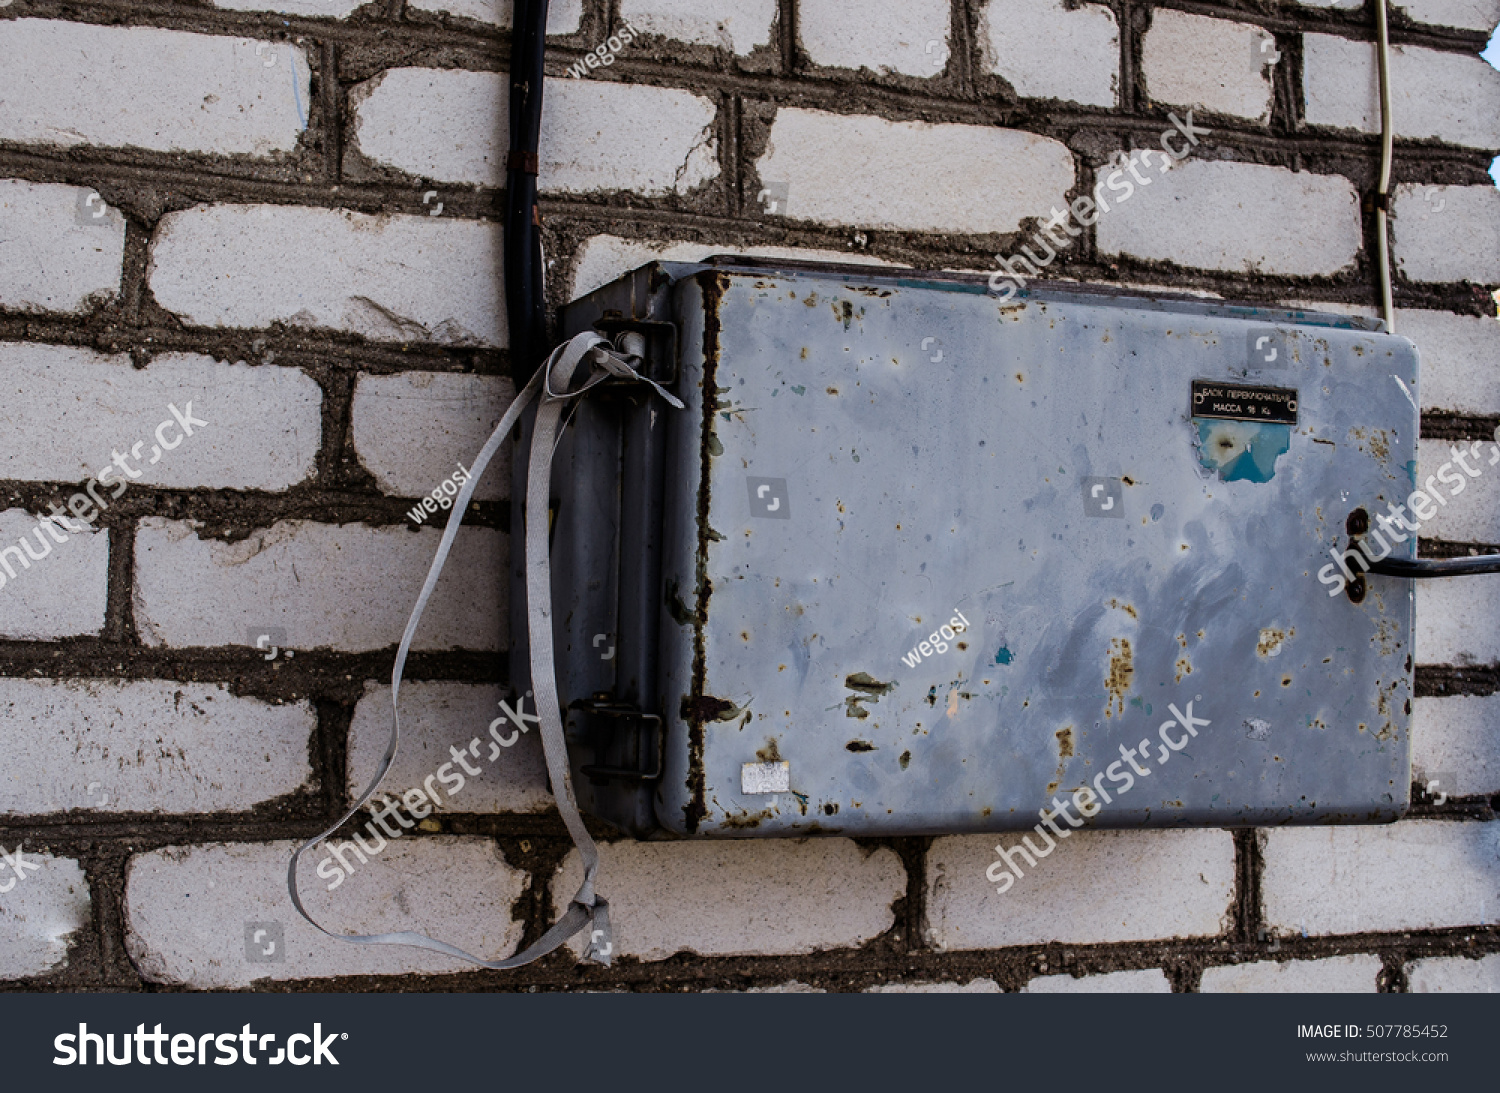 Old Electric Box On Concrete Wall Stock Photo (Edit Now) 507785452 ...